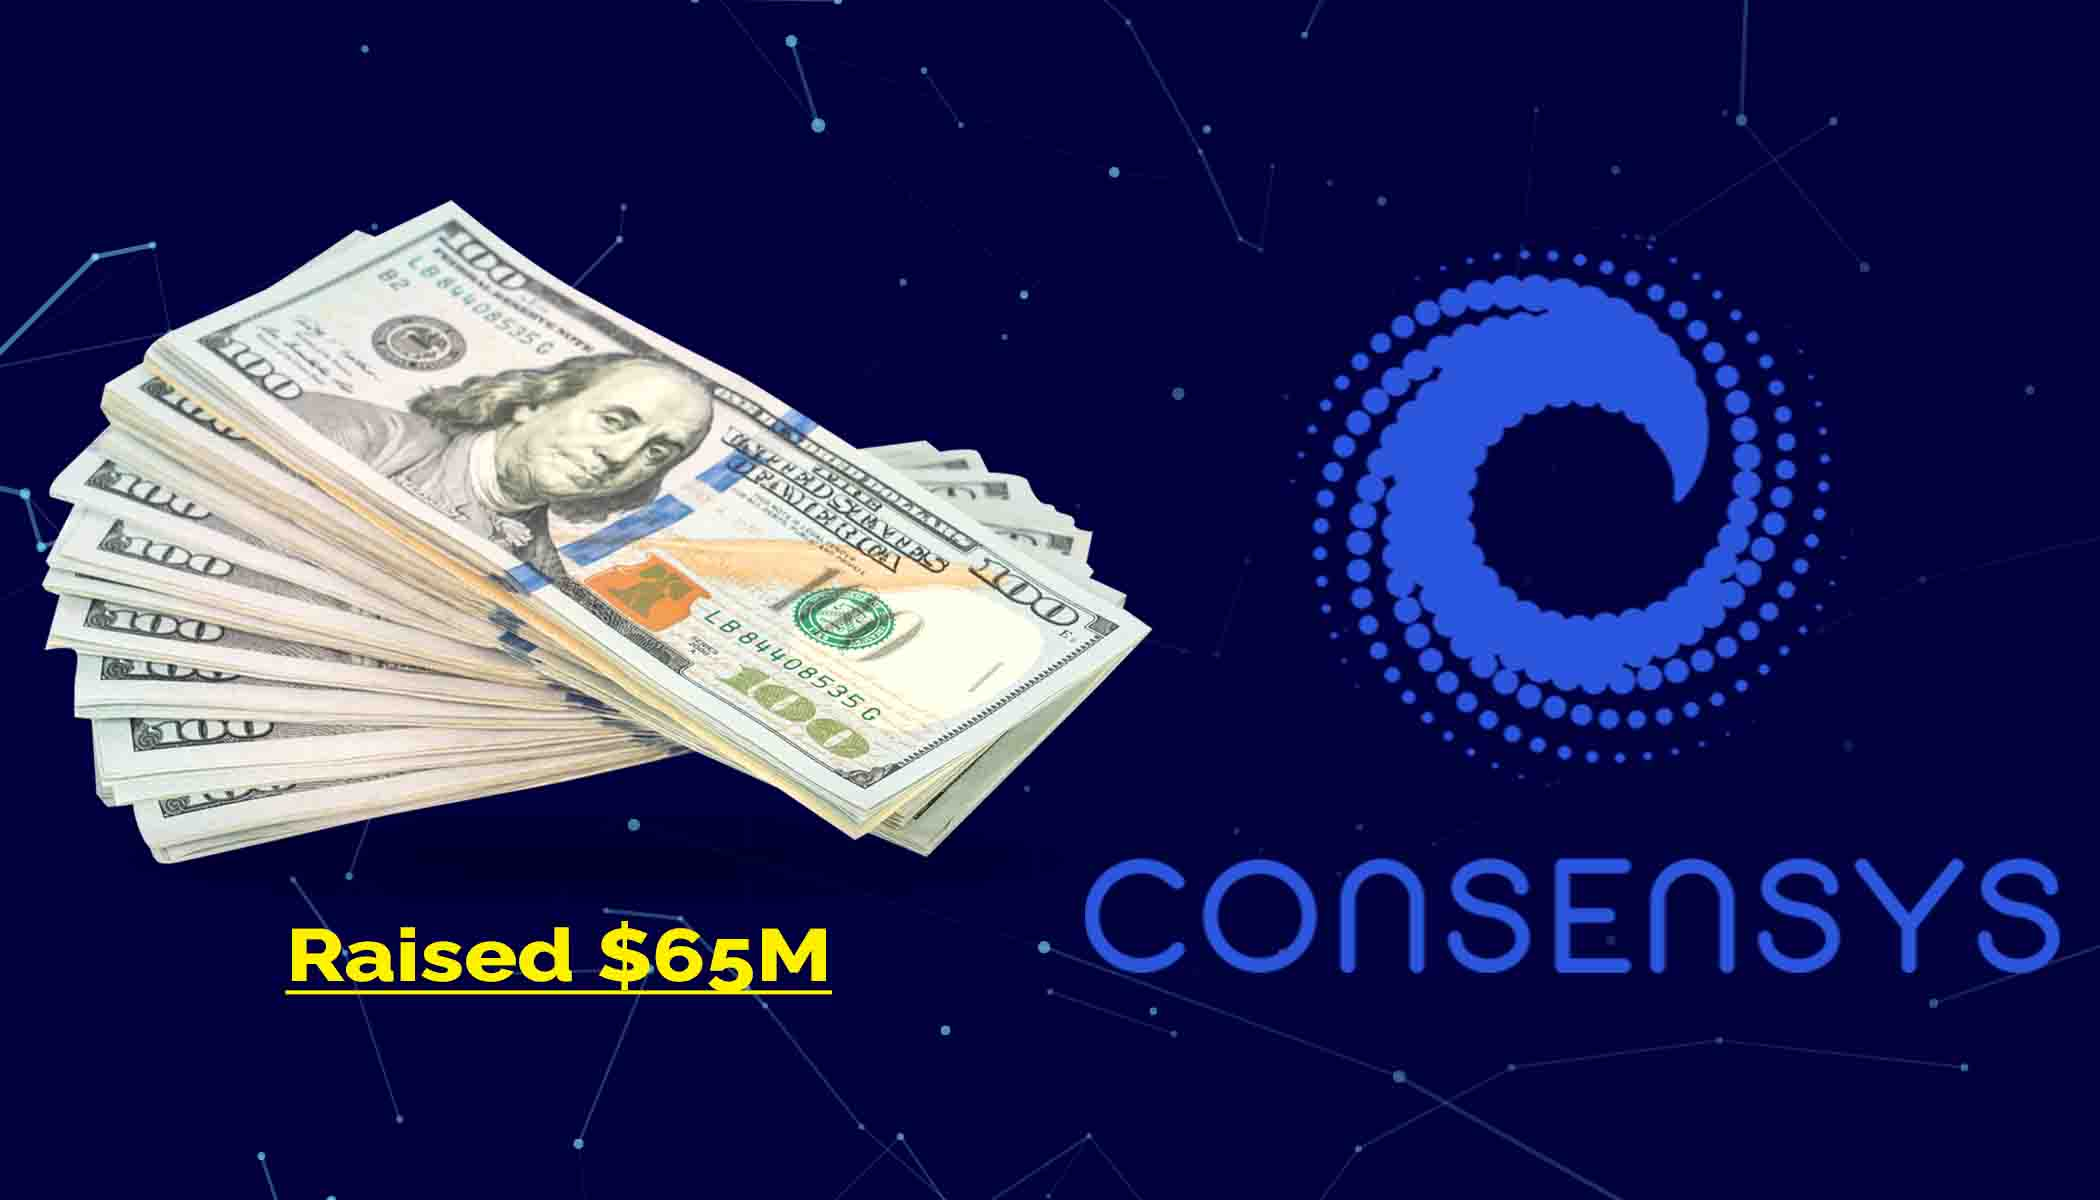 Blockchain Firm ConsenSys Raises $65M in Funding from Banking Giants